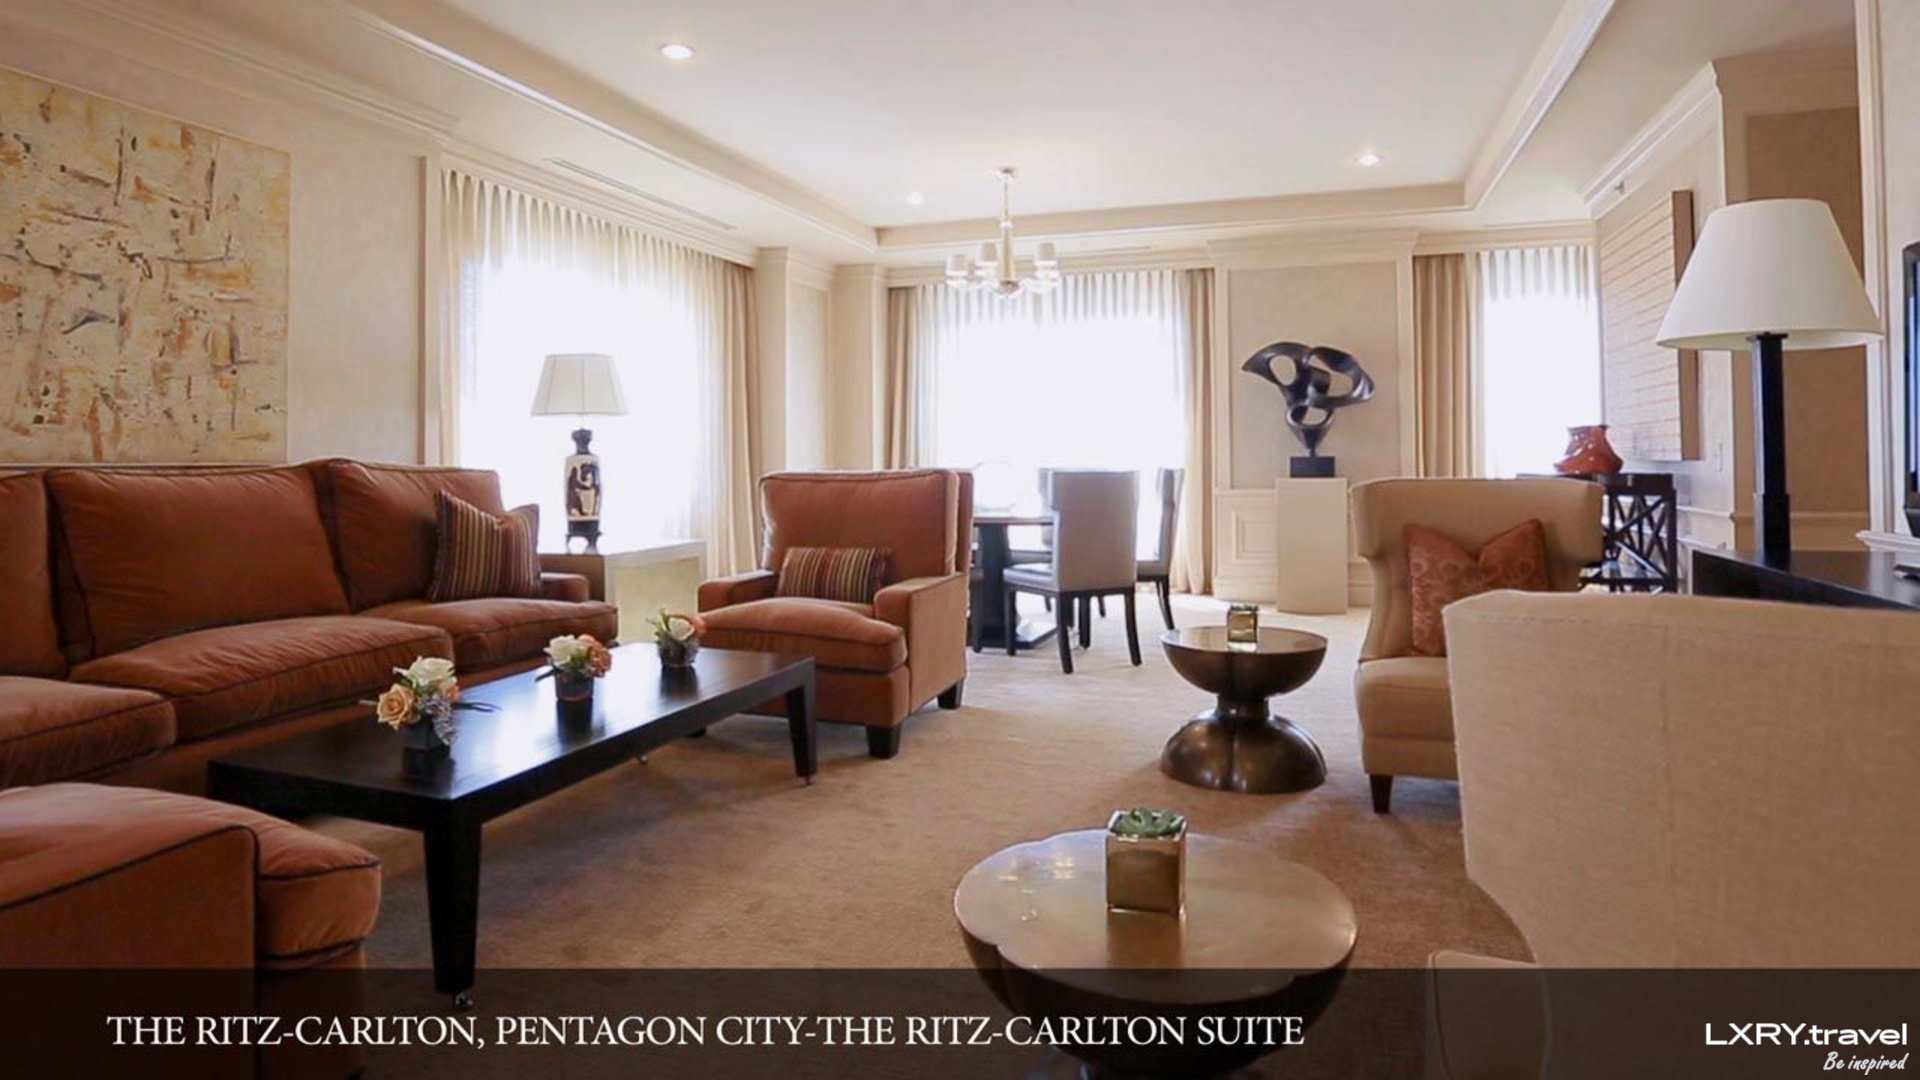 The Ritz Carlton, Pentagon City 35/35